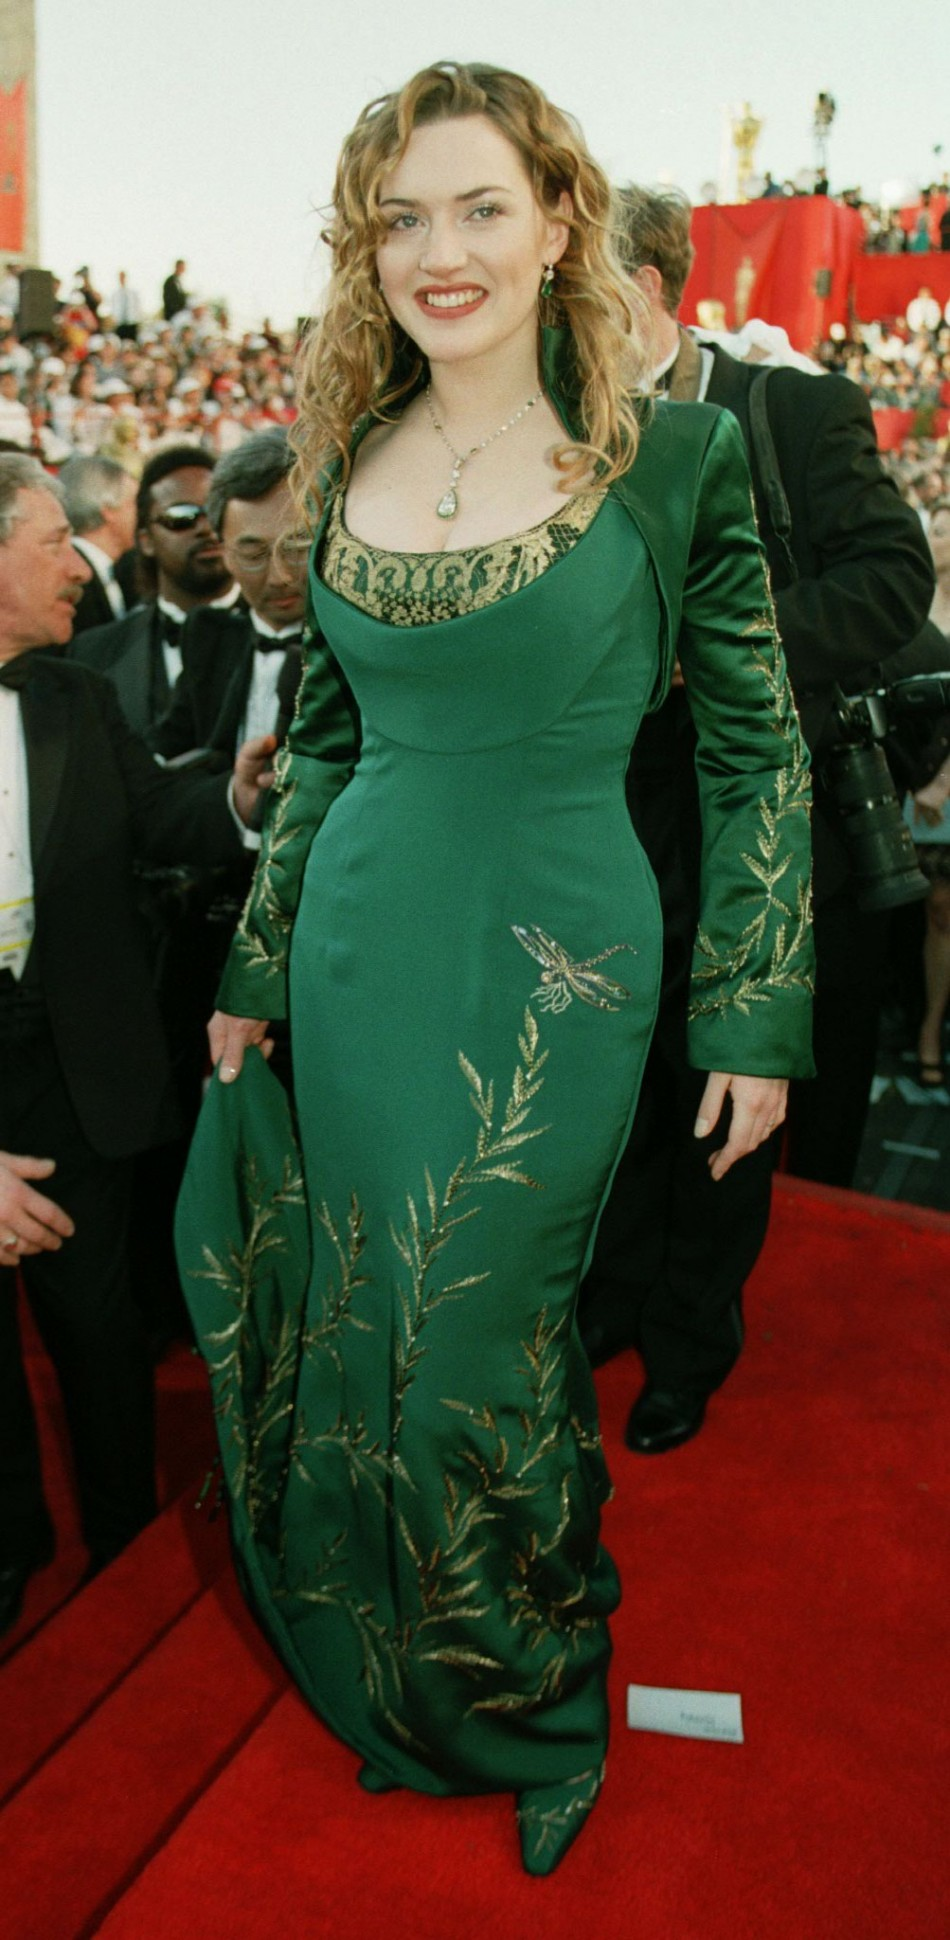 ACTRESS KATE WINSLET ARRIVES AT THE ACADEMY AWARDS